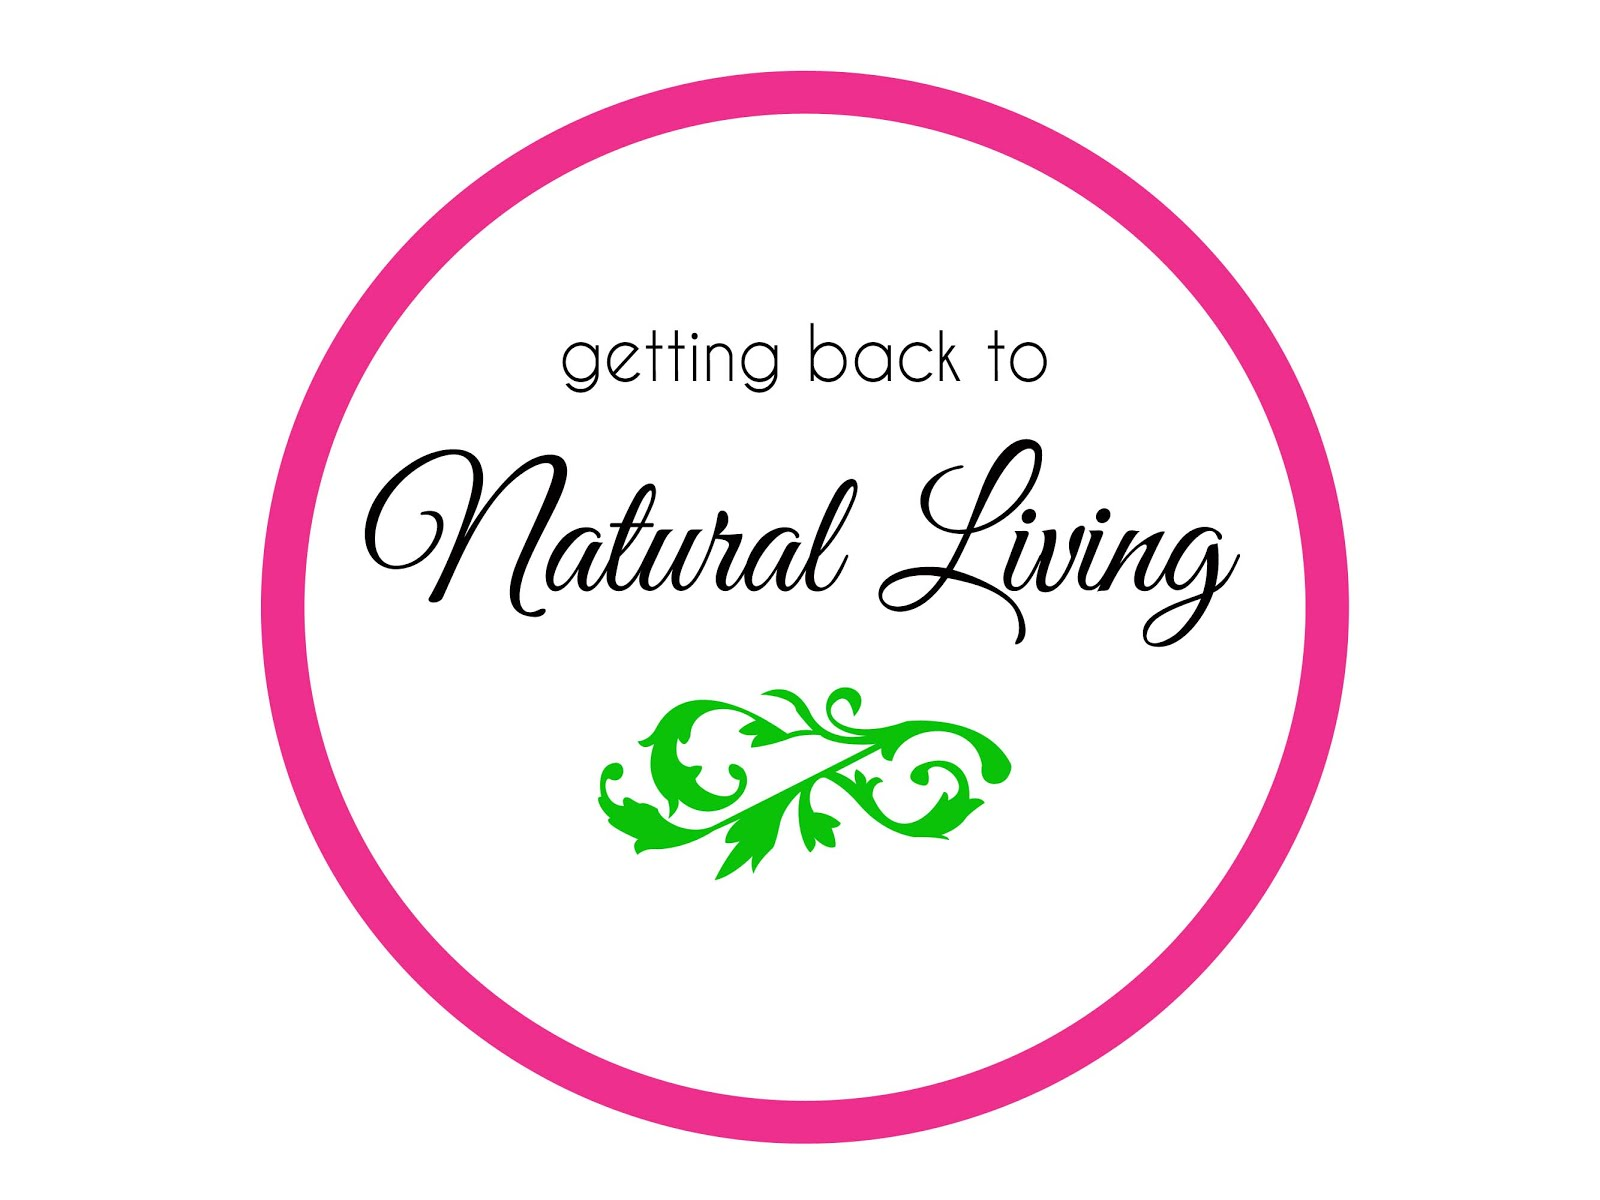 getting back to Natural Living